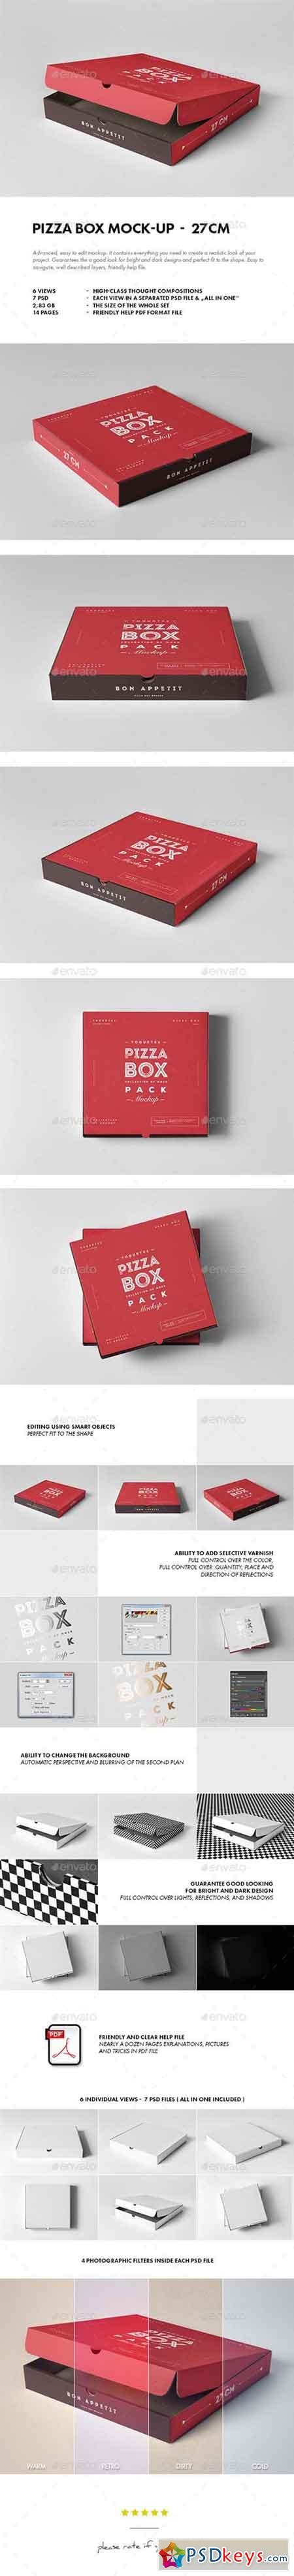 Pizza Page 2 Free Download Photoshop Vector Stock Image